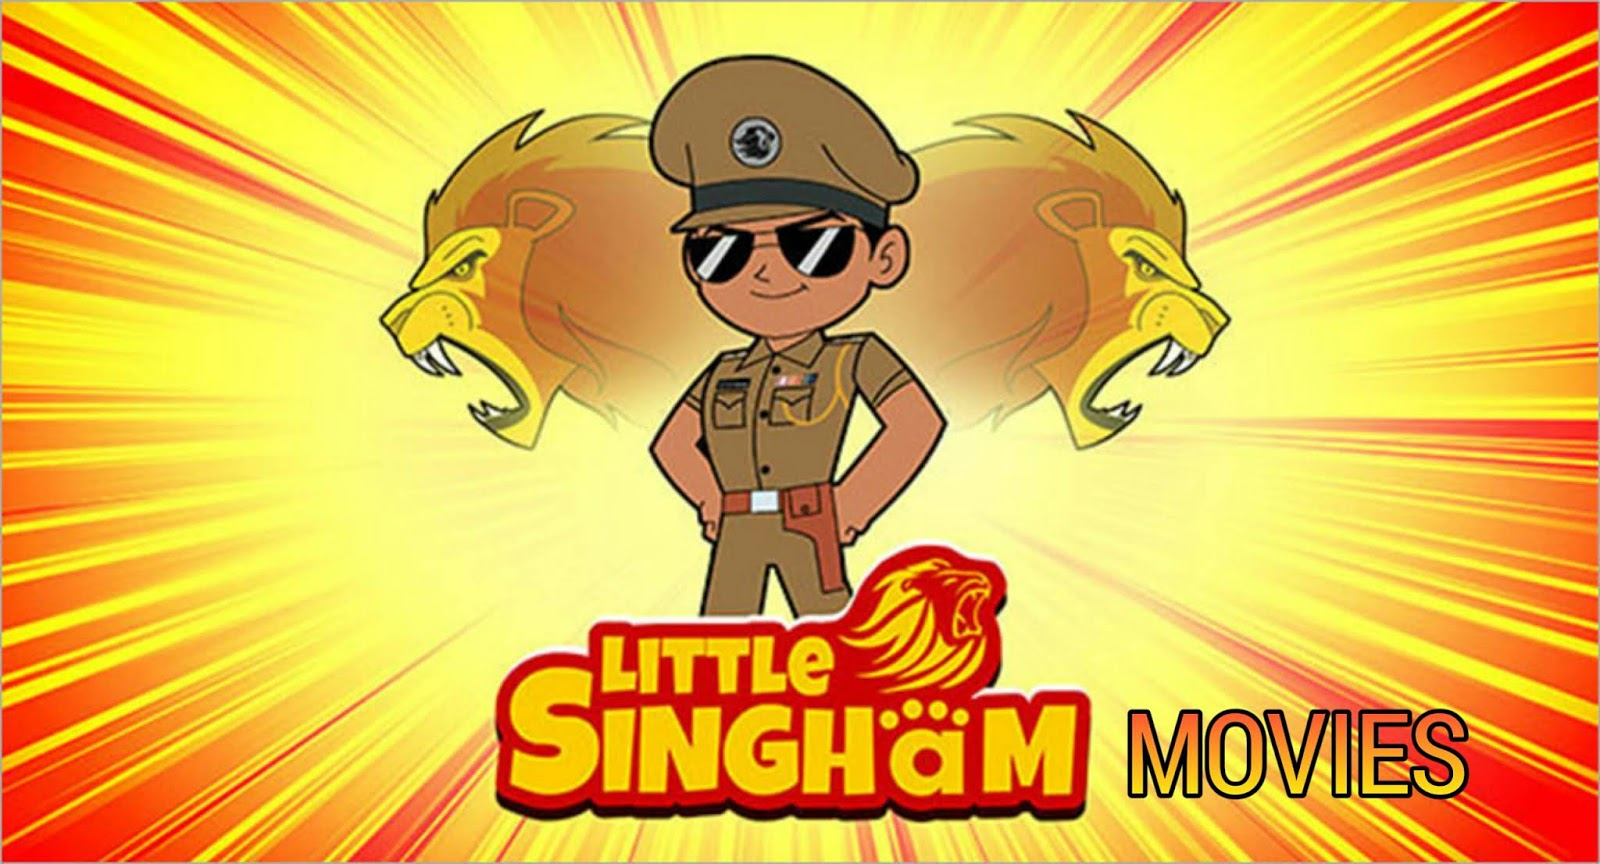 LITTLE SINGHAM ALL MOVIES ACCORDING TO HINDI RELEASE HD DOWNLOAD/WATCH ONLINE